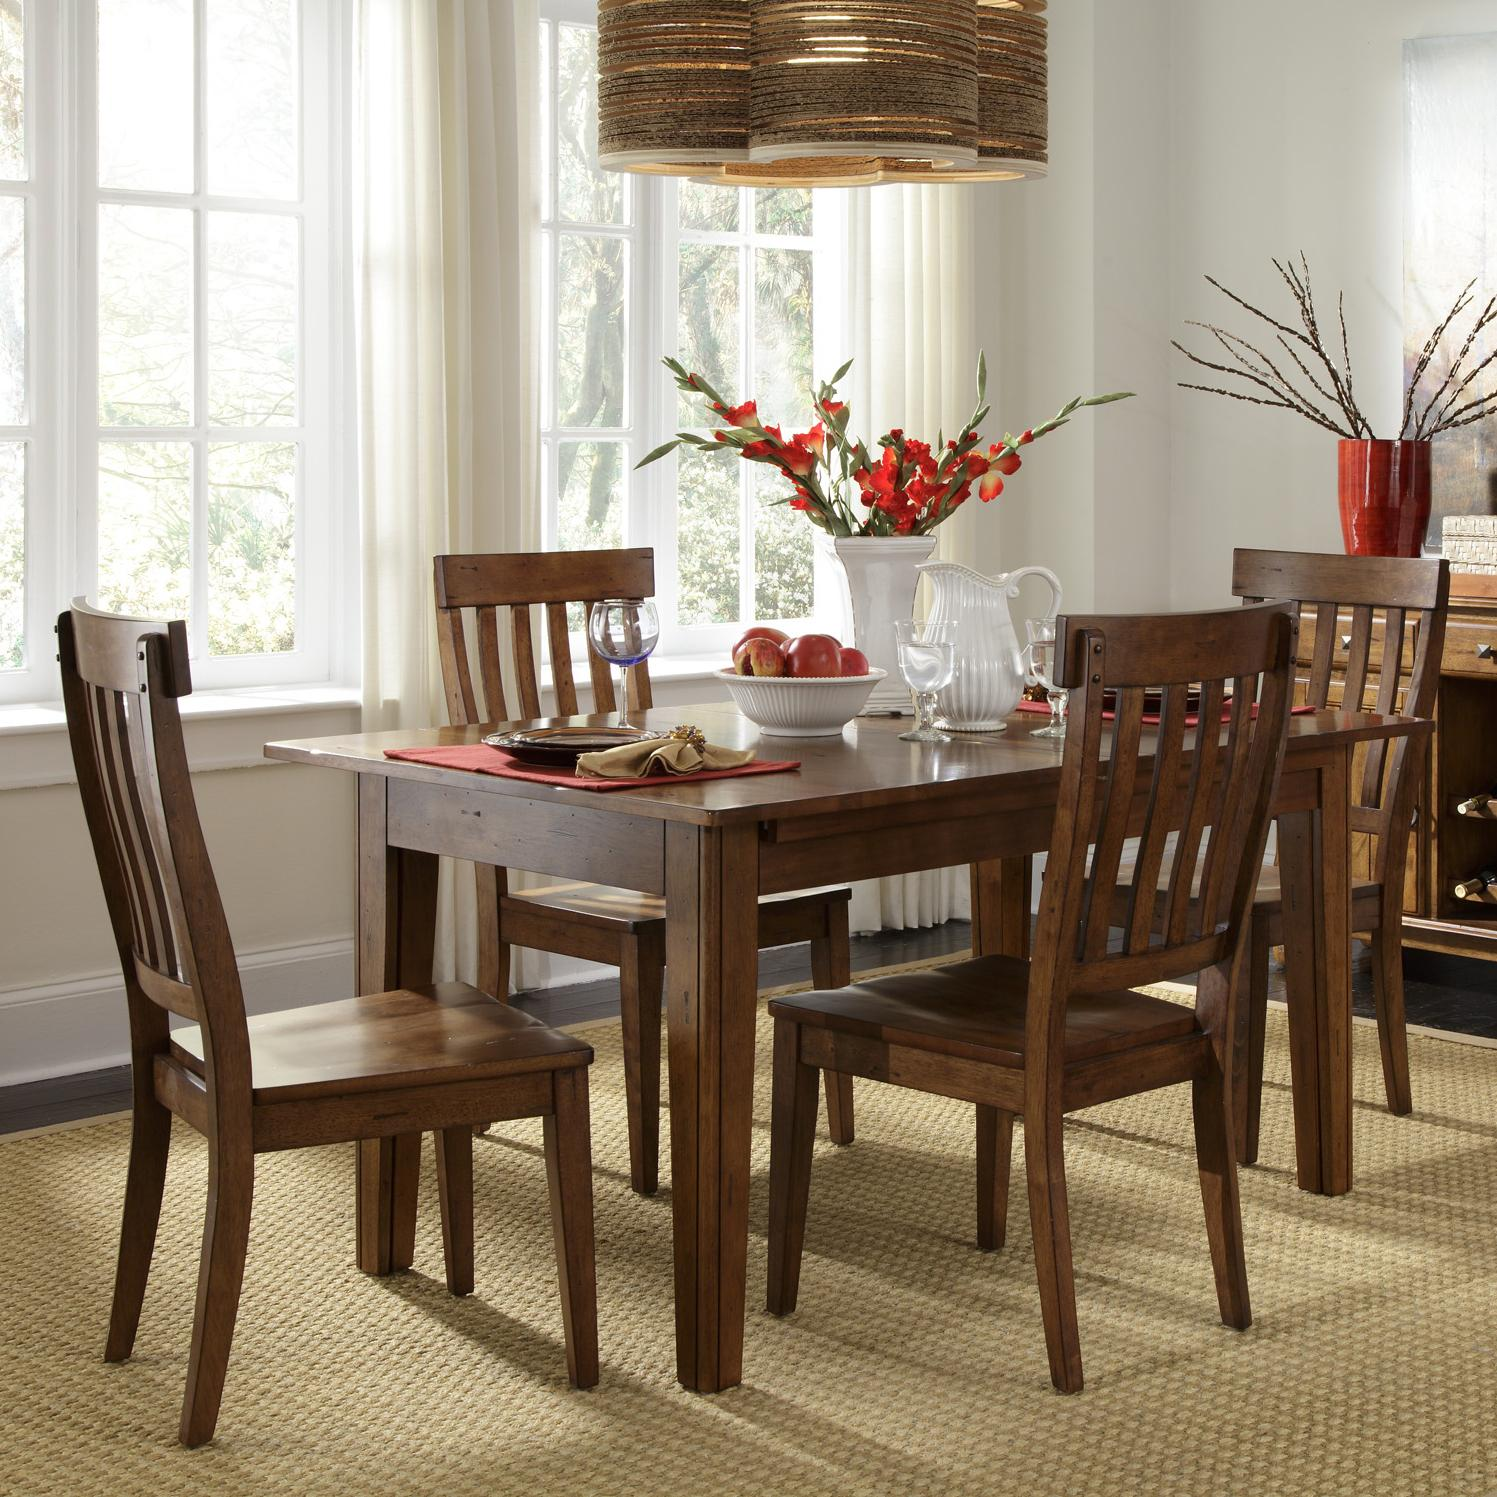 Toluca 5 Piece Set by A-A at Walker's Furniture